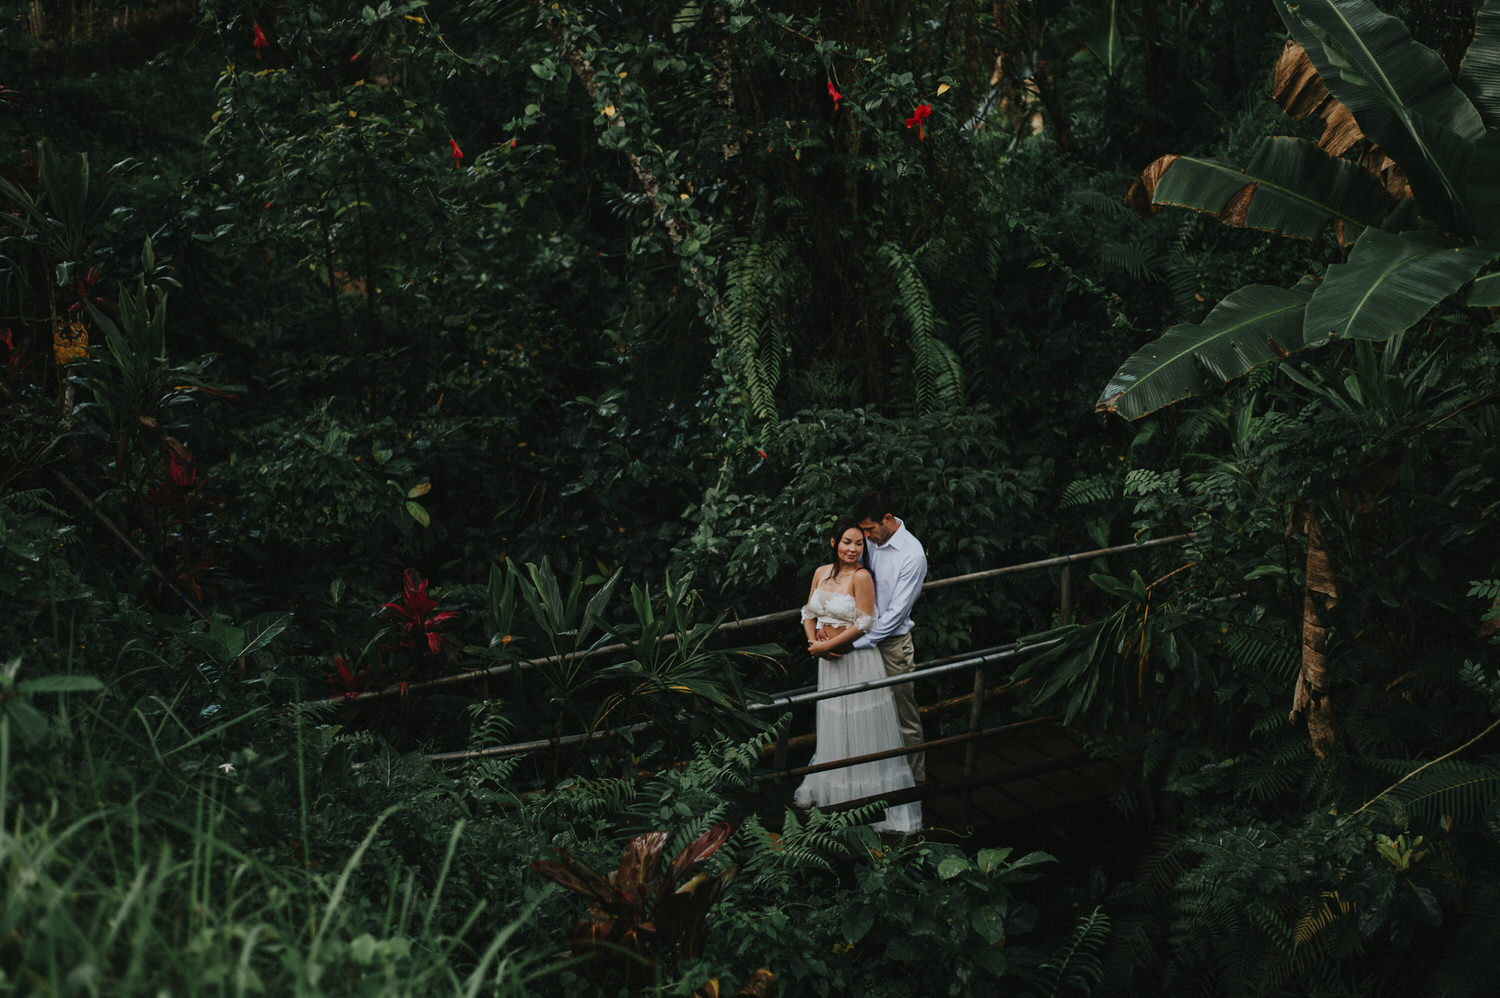 bali wedding - elopement - ubud wedding - diktatphotography - olga + Jason - 22